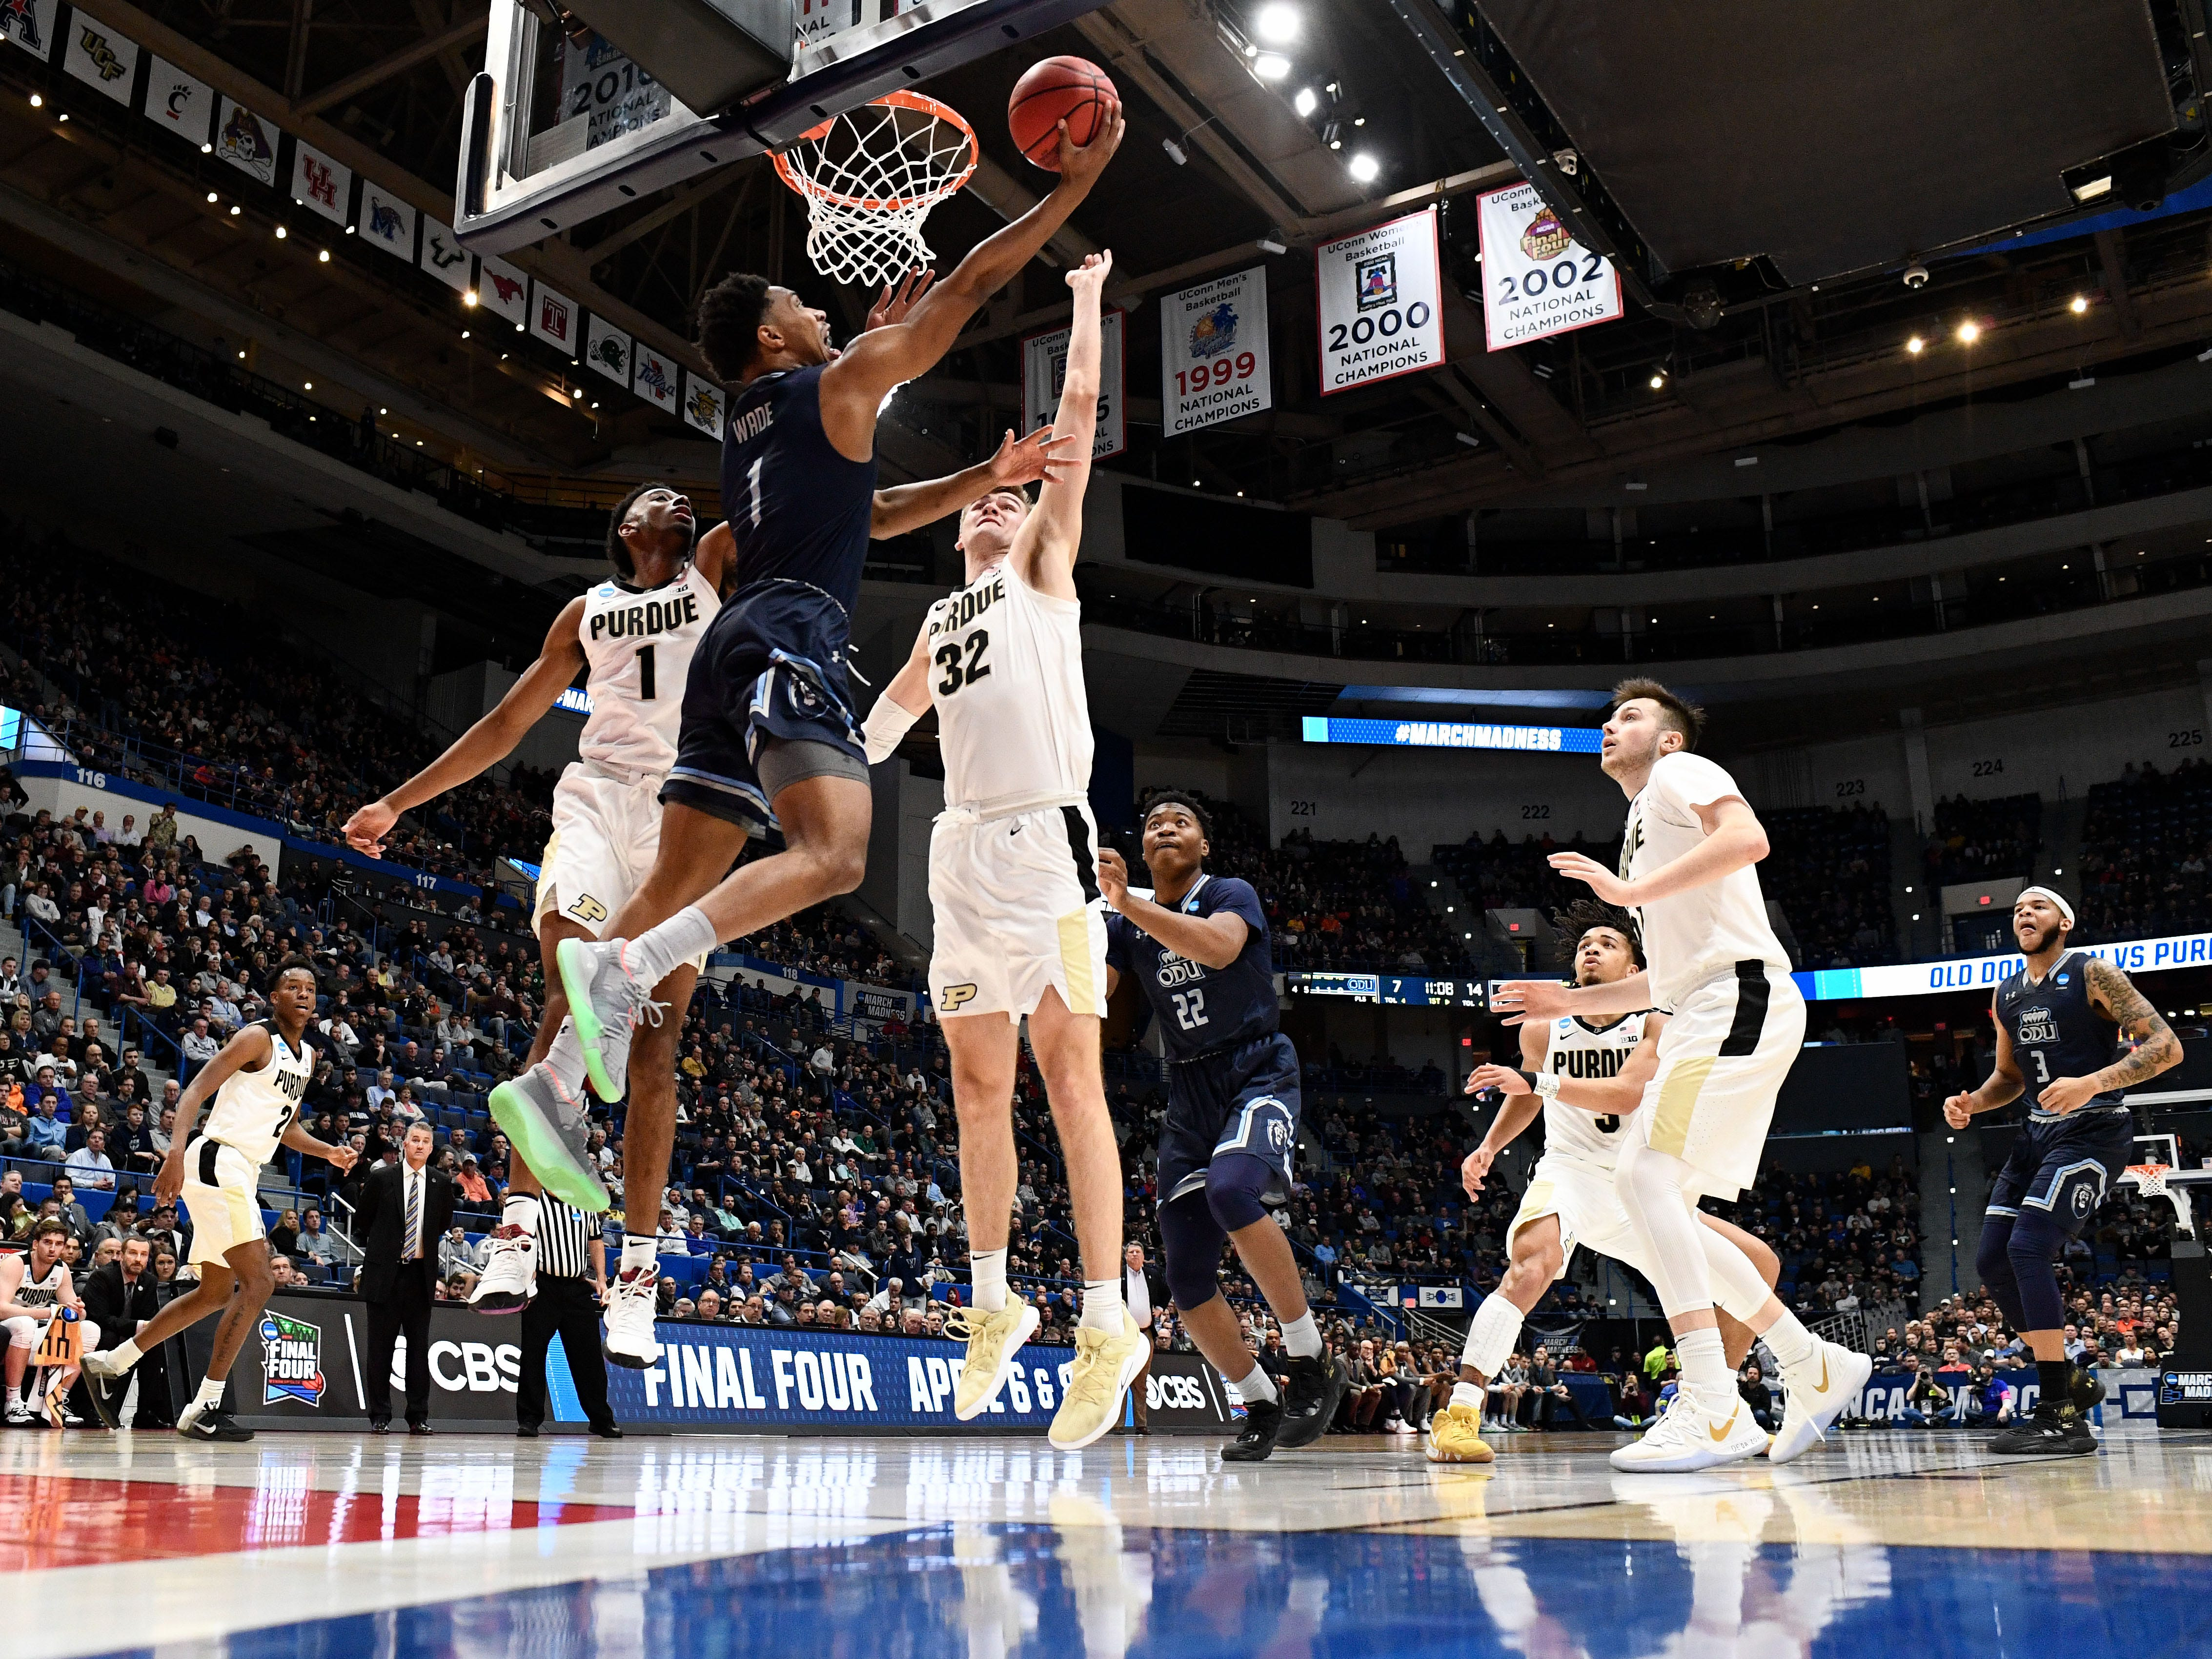 Mar 21, 2019; Hartford, CT, USA; Old Dominion Monarchs guard Jason Wade (1) attempt a layup against the Purdue Boilermakers during the first half of a game in the first round of the 2019 NCAA Tournament at XL Center. Mandatory Credit: Robert Deutsch-USA TODAY Sports